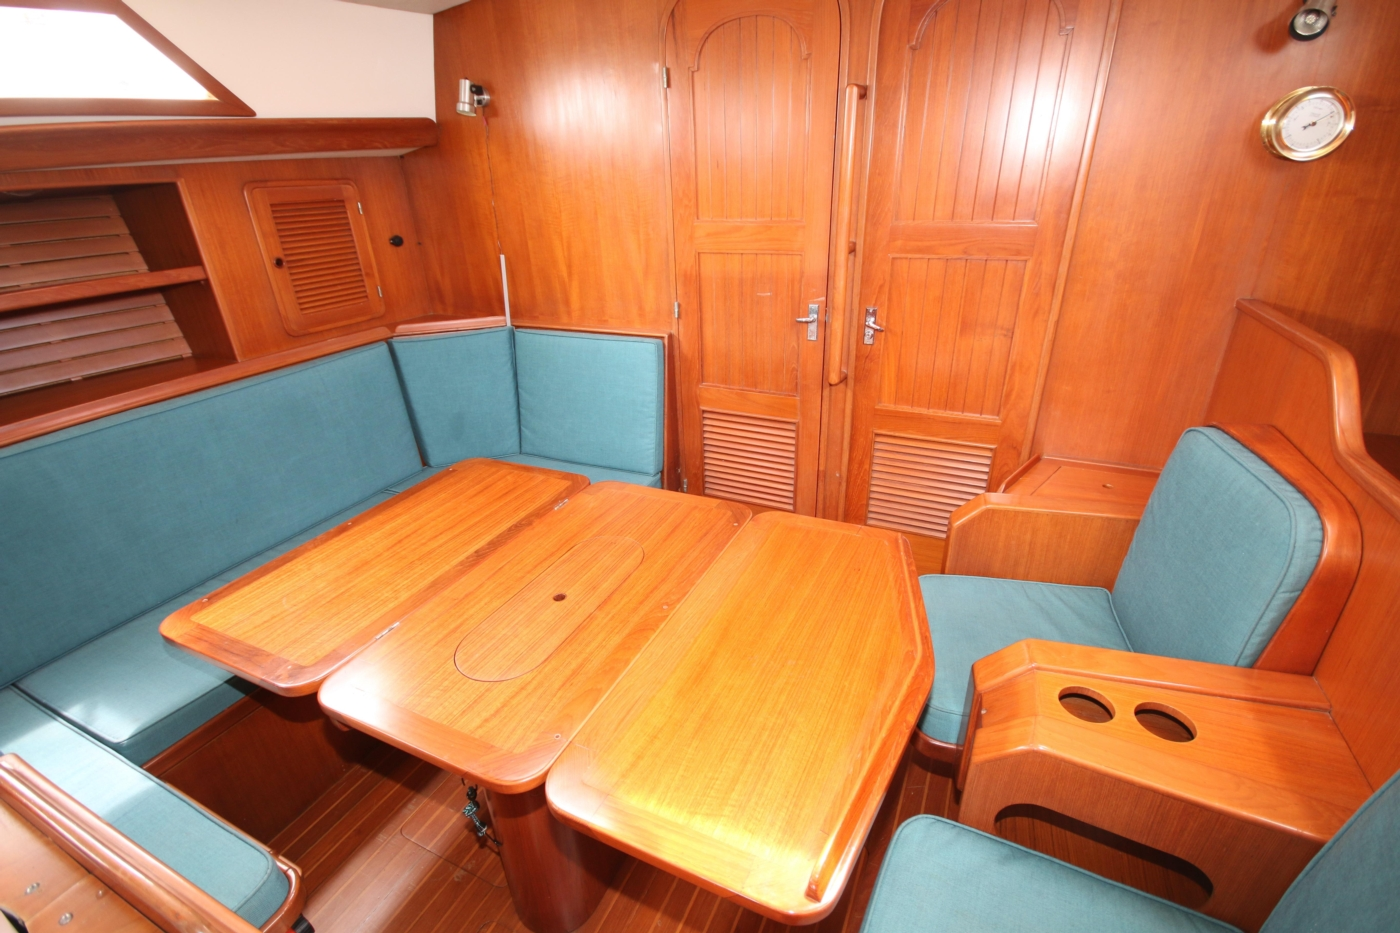 1996 Tanton 45 Offshore, Dining table